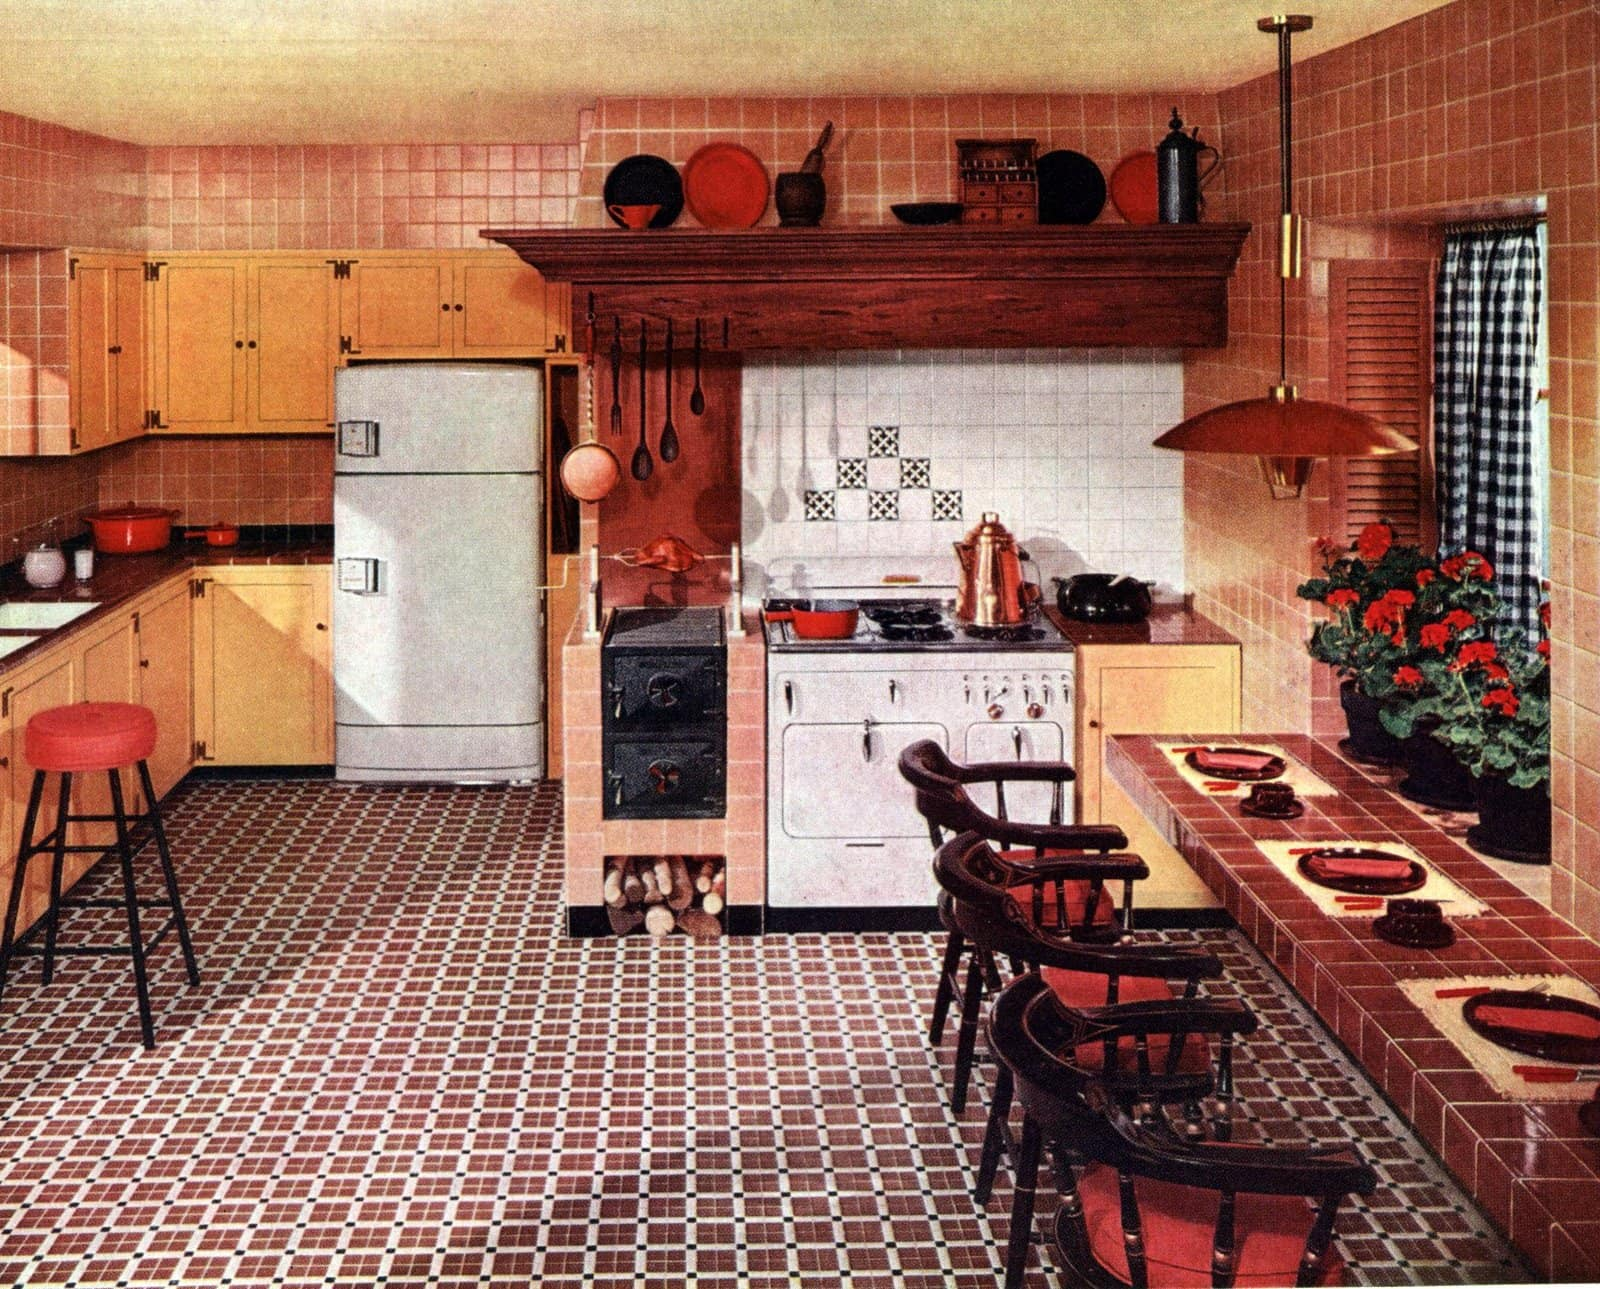 Retro 50s kitchen with tile everywhere